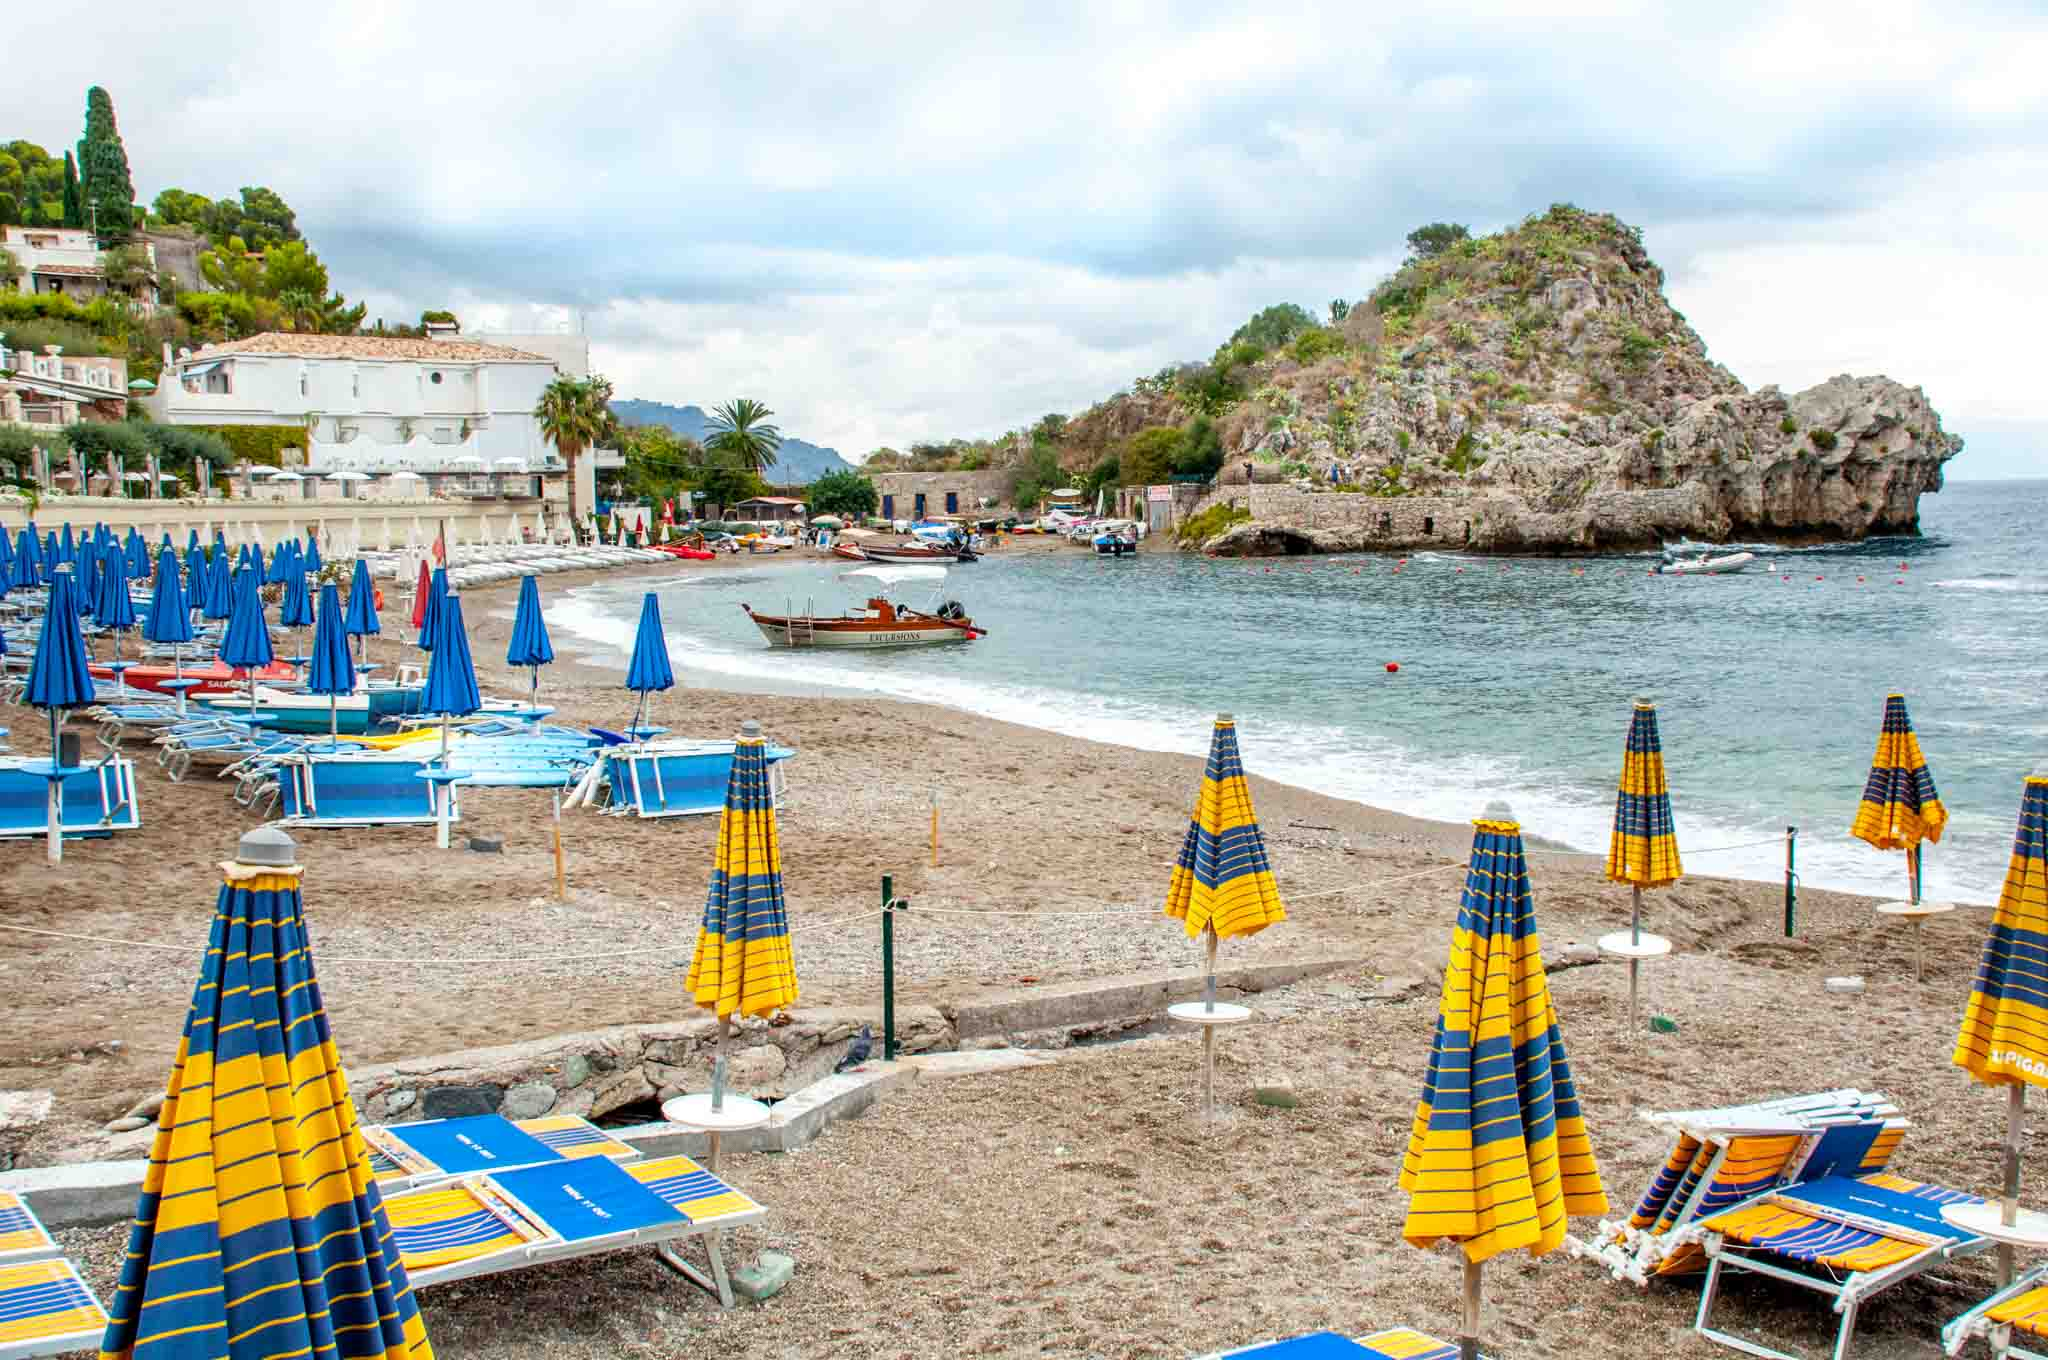 Umbrellas and chairs on the beach in Sicily